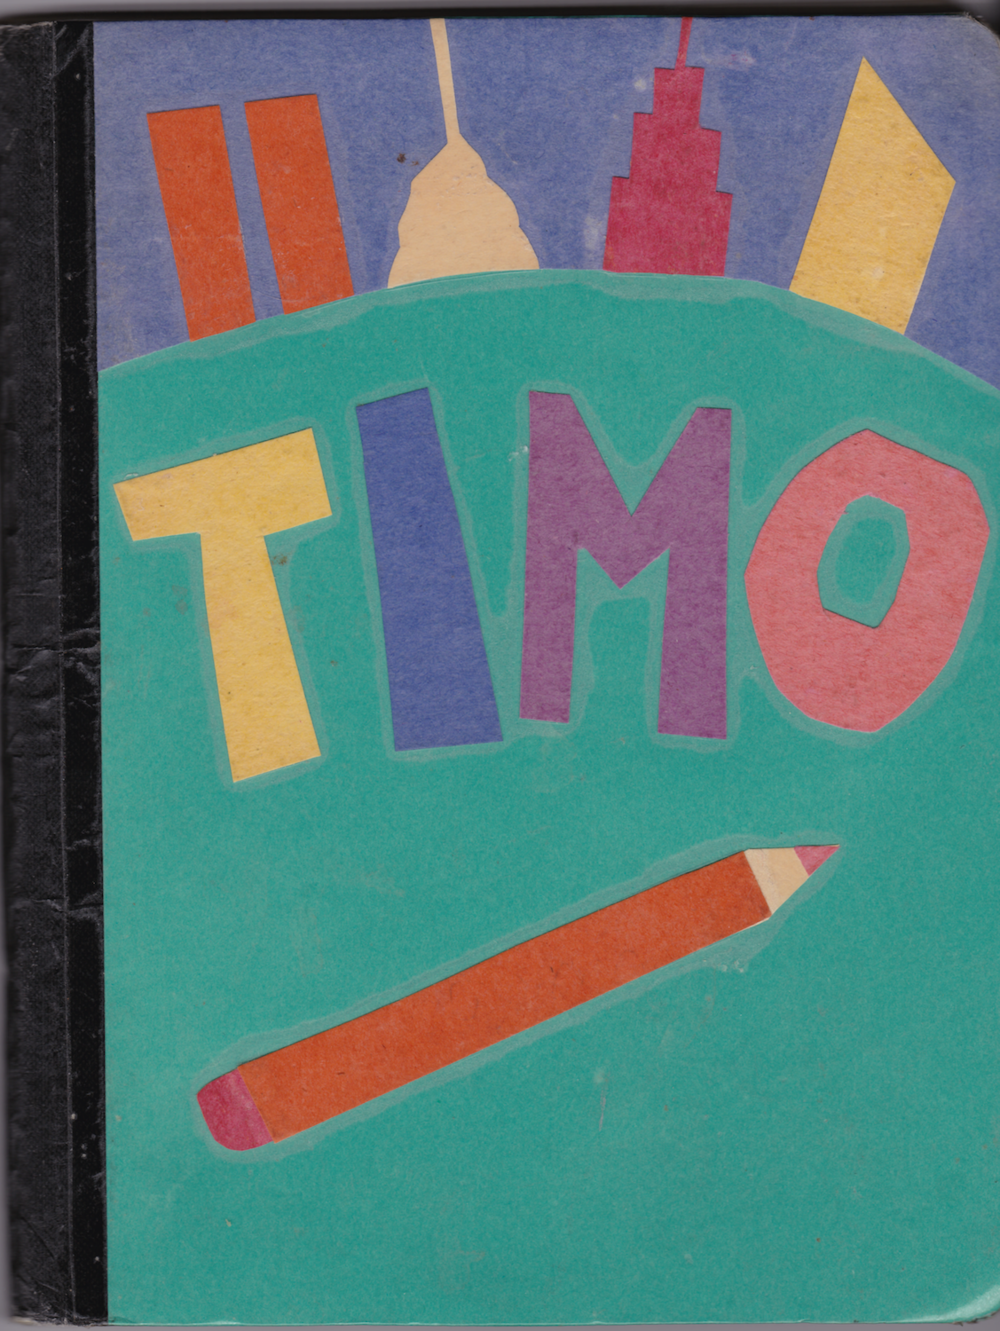 ART_TIMO_BookCover_CutOut.png